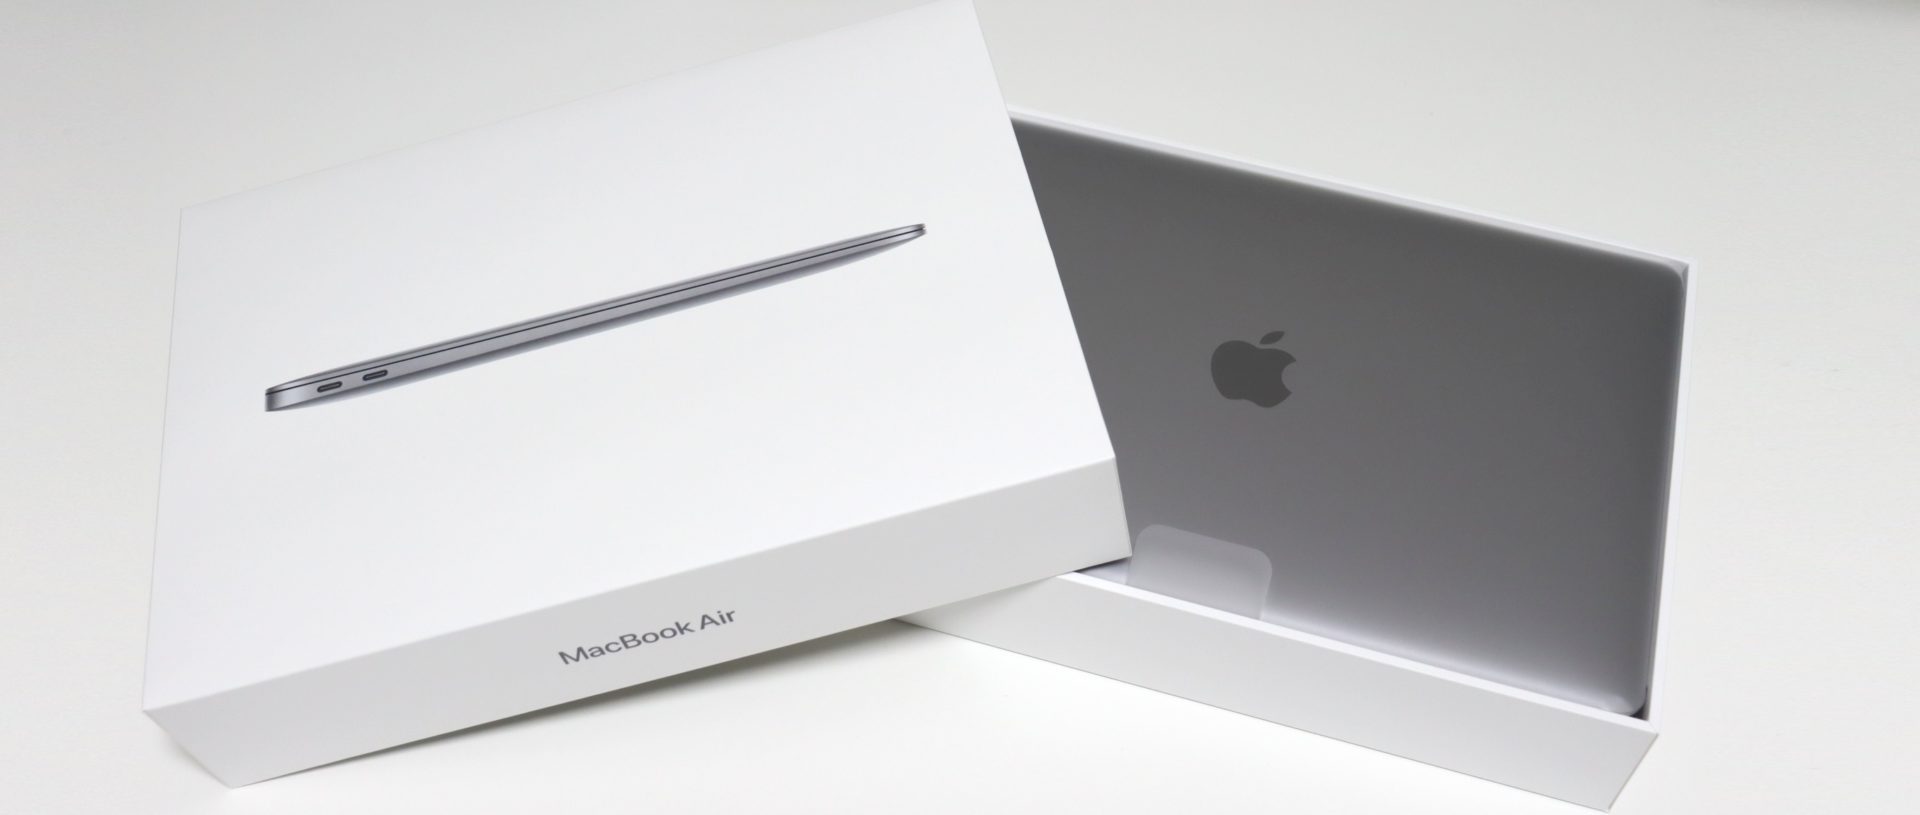 Macbook Air with M1 processor レビュー